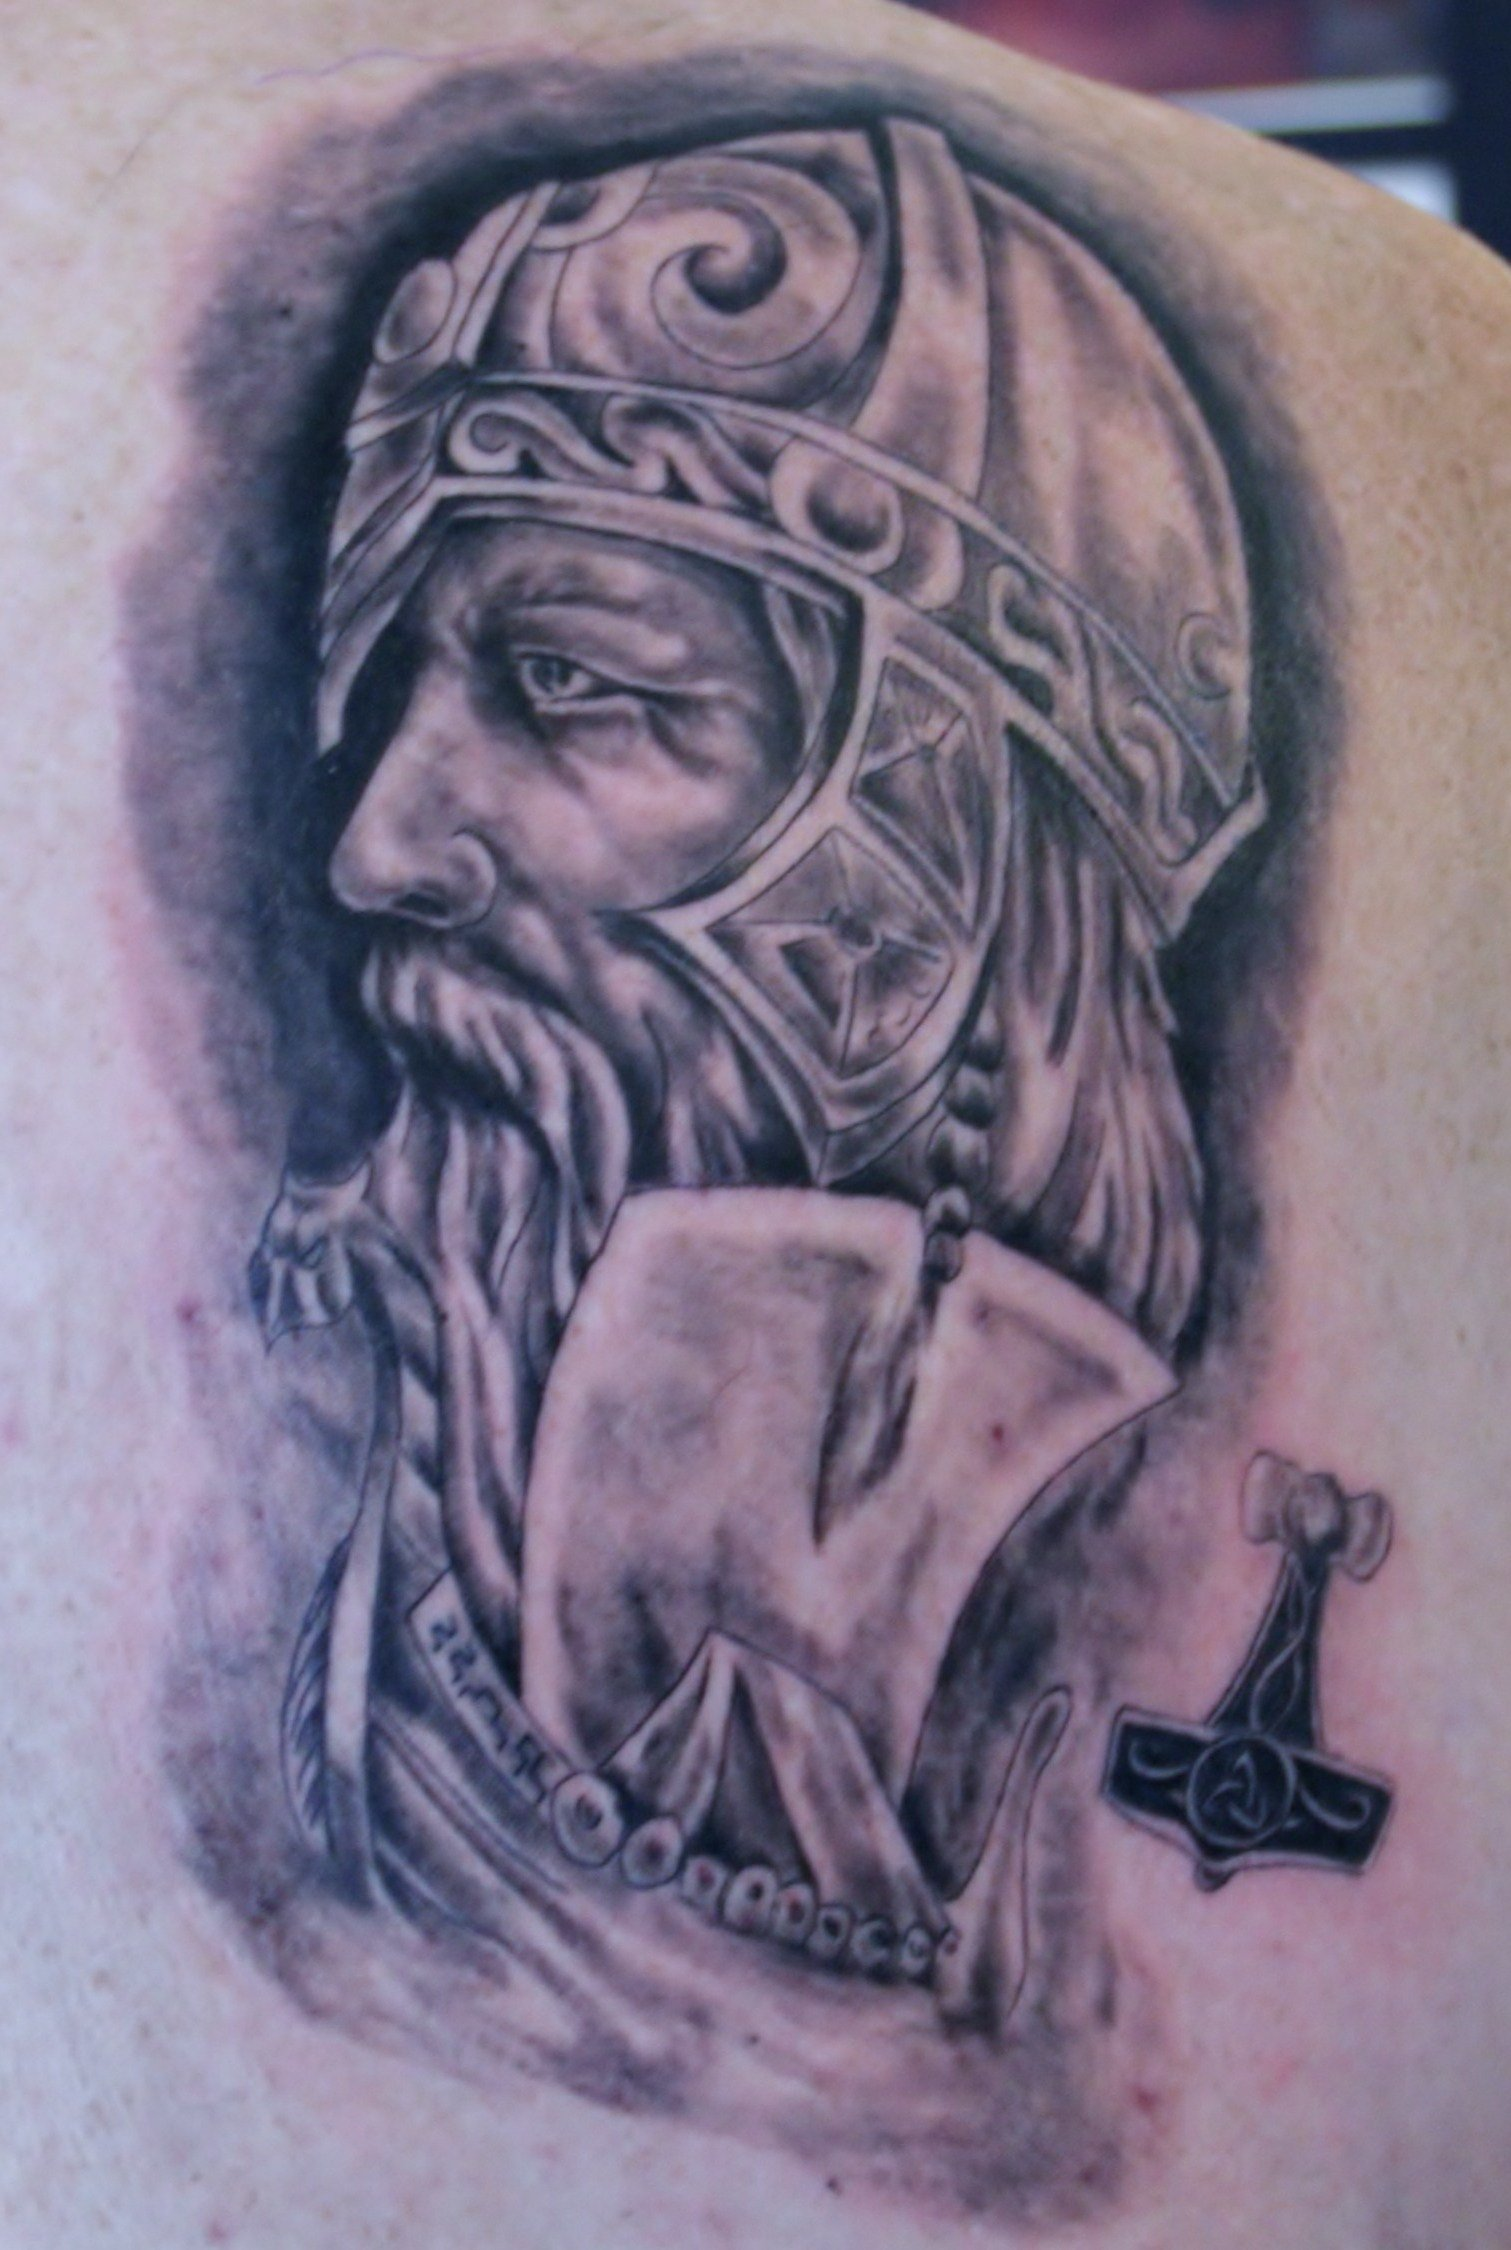 Wikinger tattoo Motive - Odin